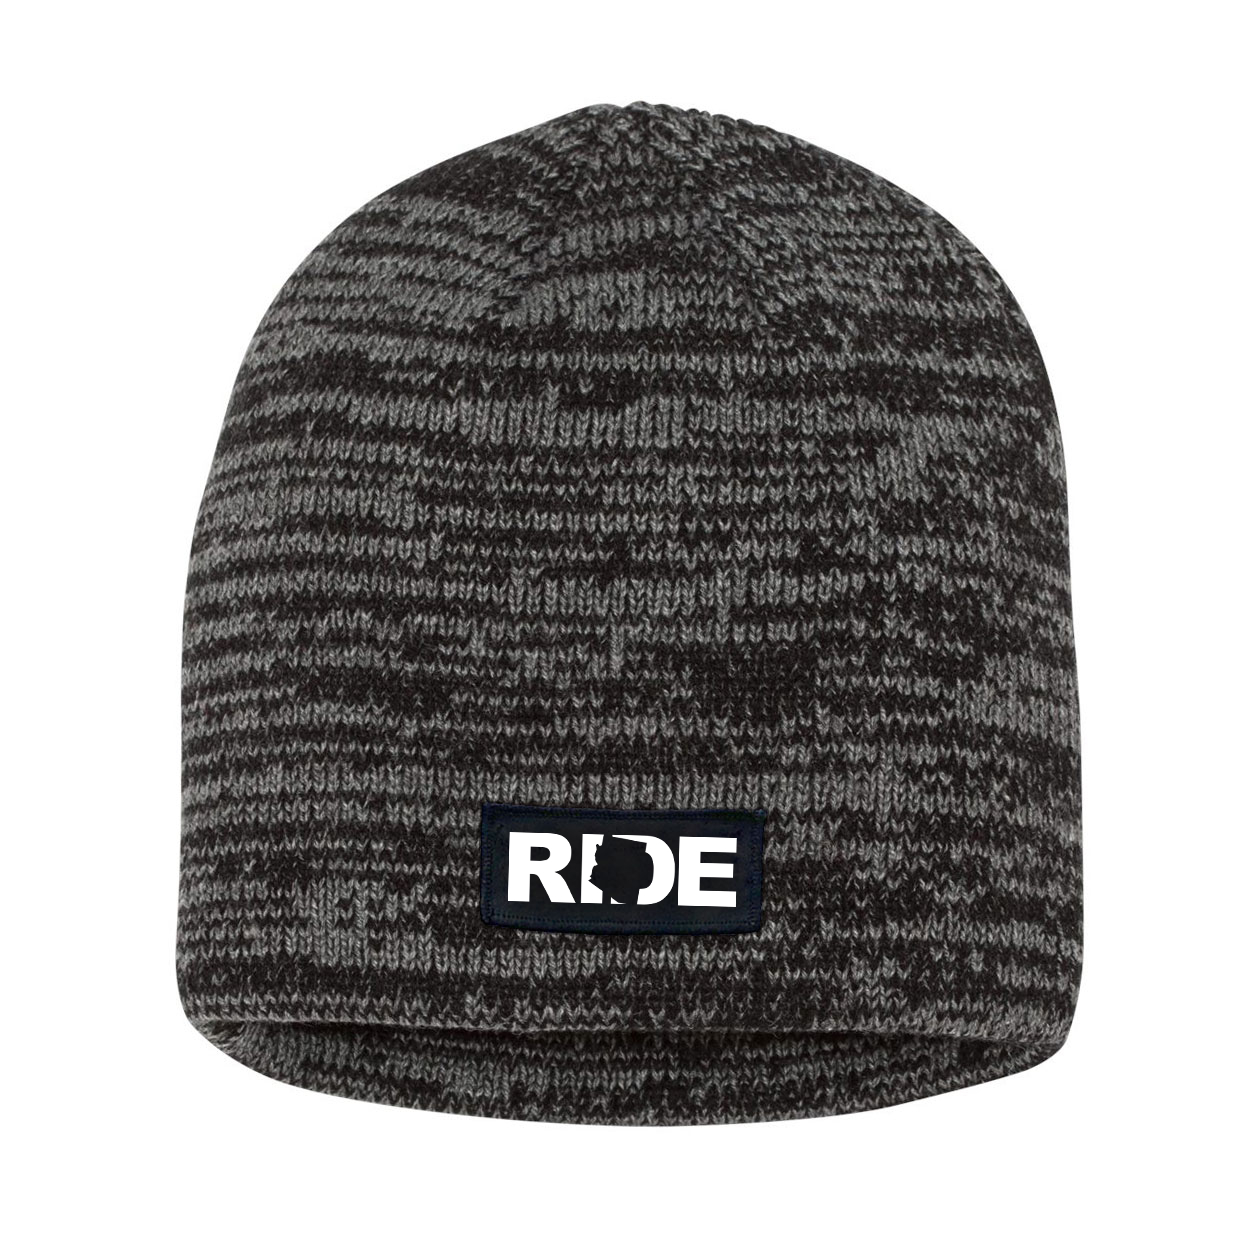 Ride Arizona Night Out Woven Patch Skully Marled Knit Beanie Black/Gray (White Logo)